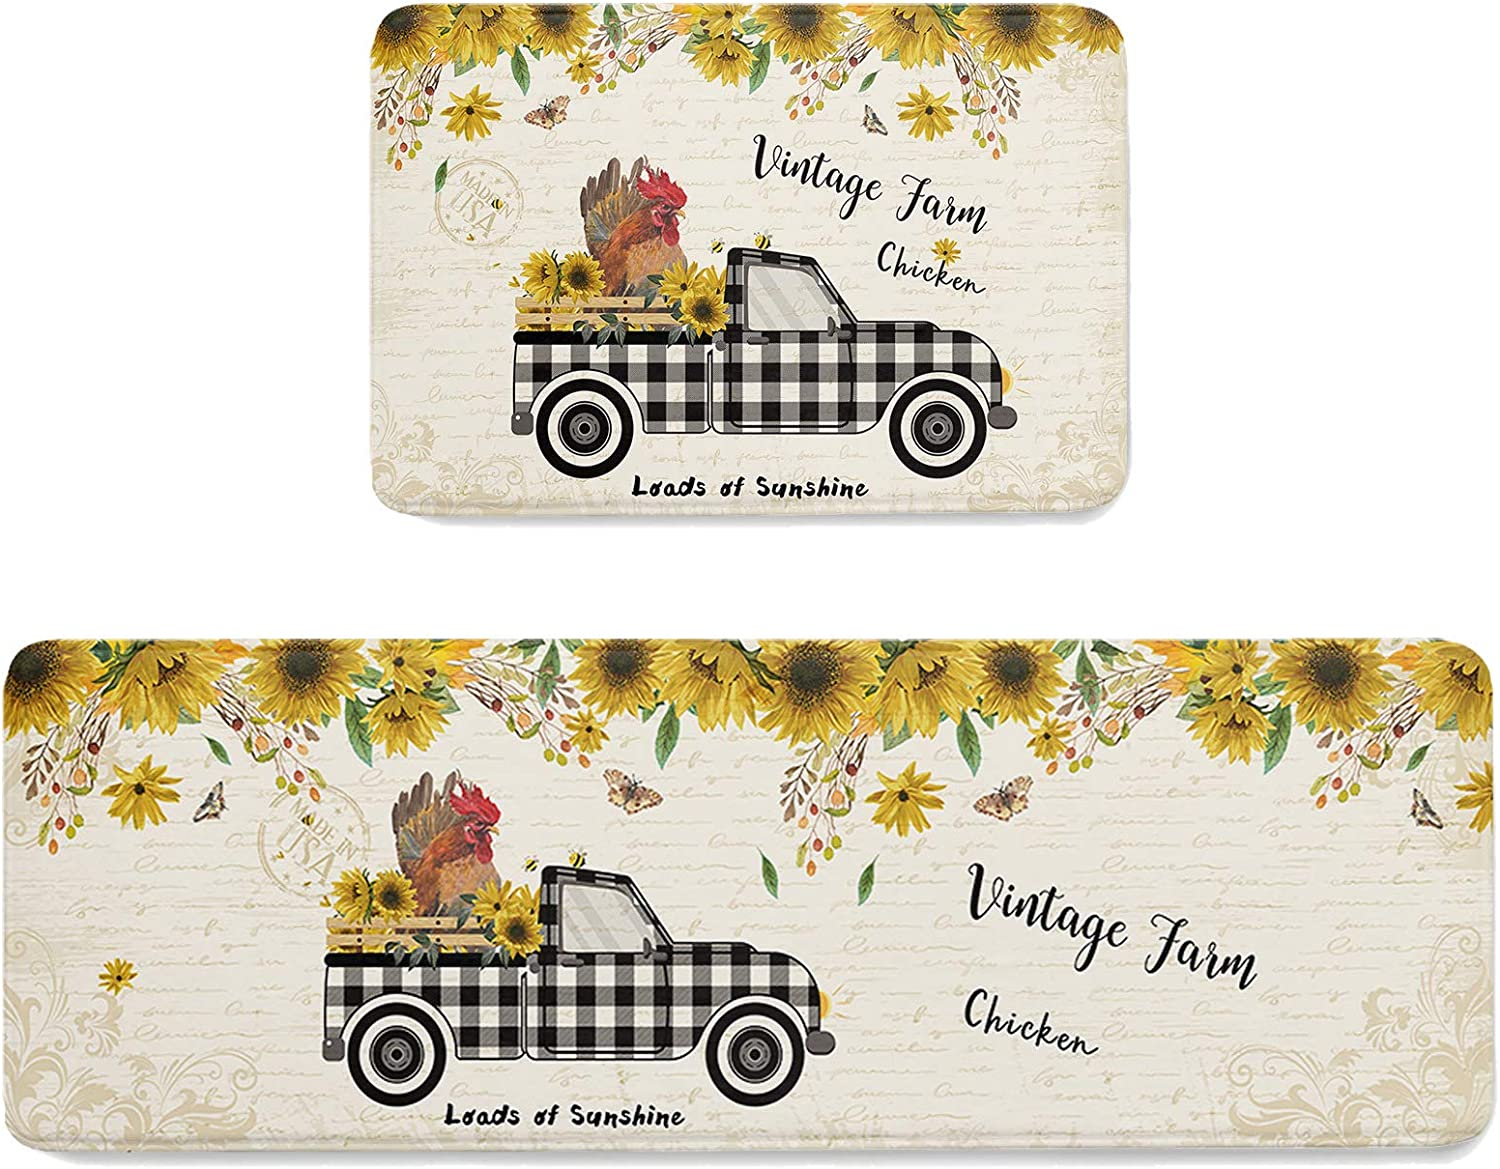 Free shipping on posting reviews Kitchen Mats Rural Black Checkered with Chicken Sunflower R Farm Jacksonville Mall